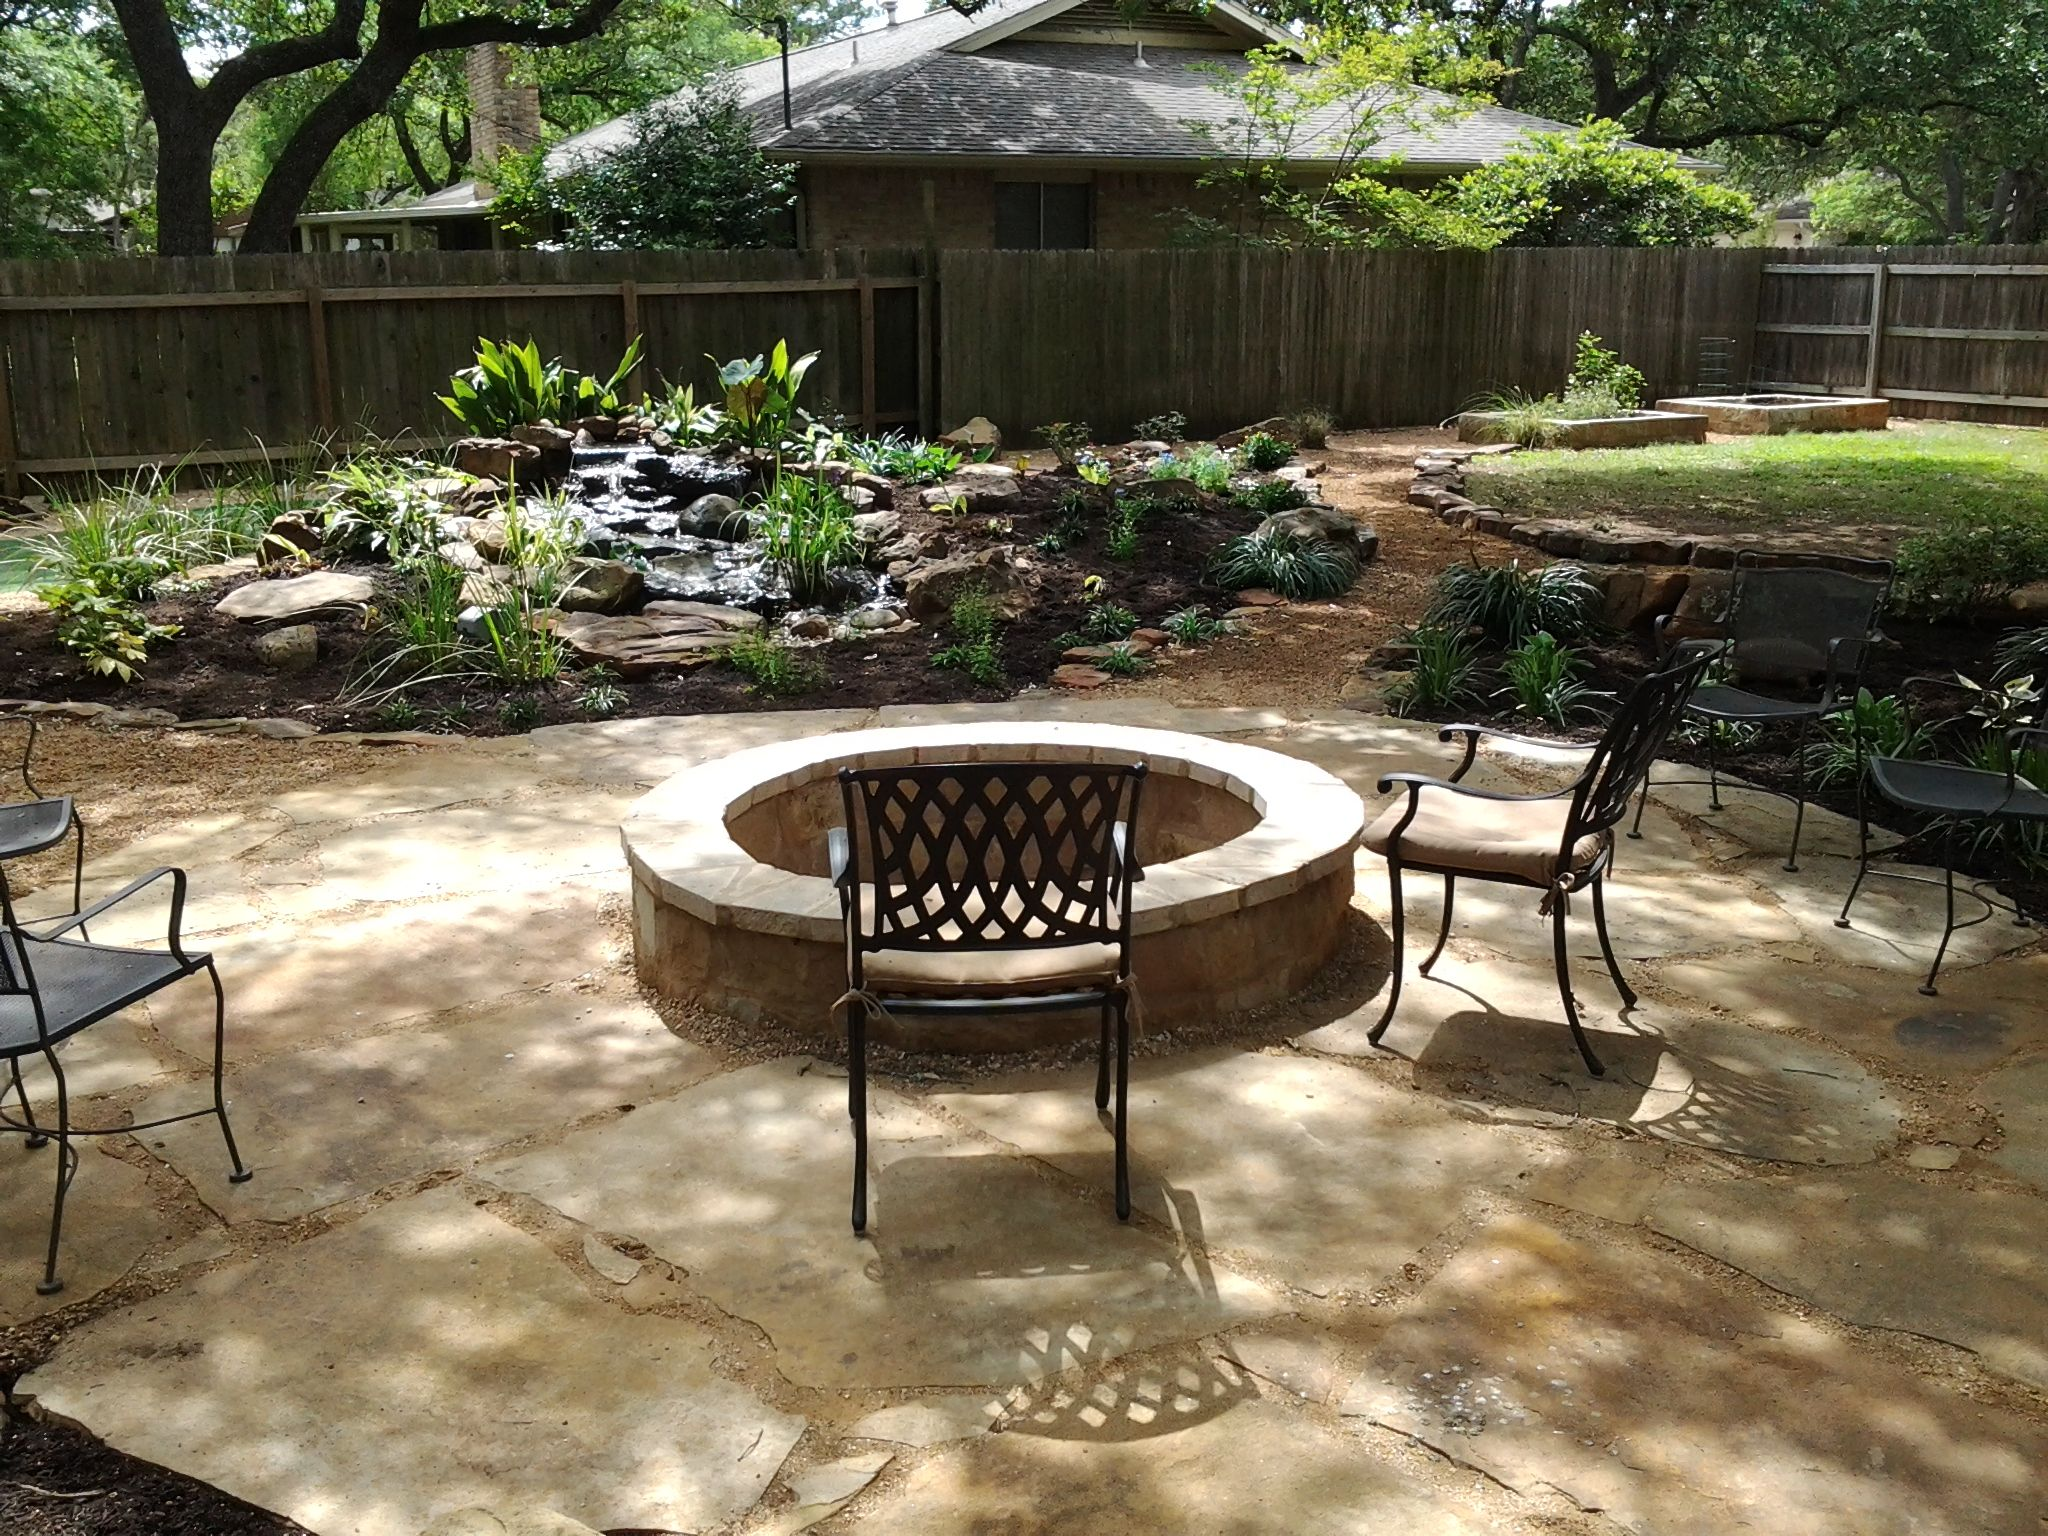 Bon Oklahoma Flagstone Patio Set In Decomposed Granite With Fire Pit And Water  Feature Set In A